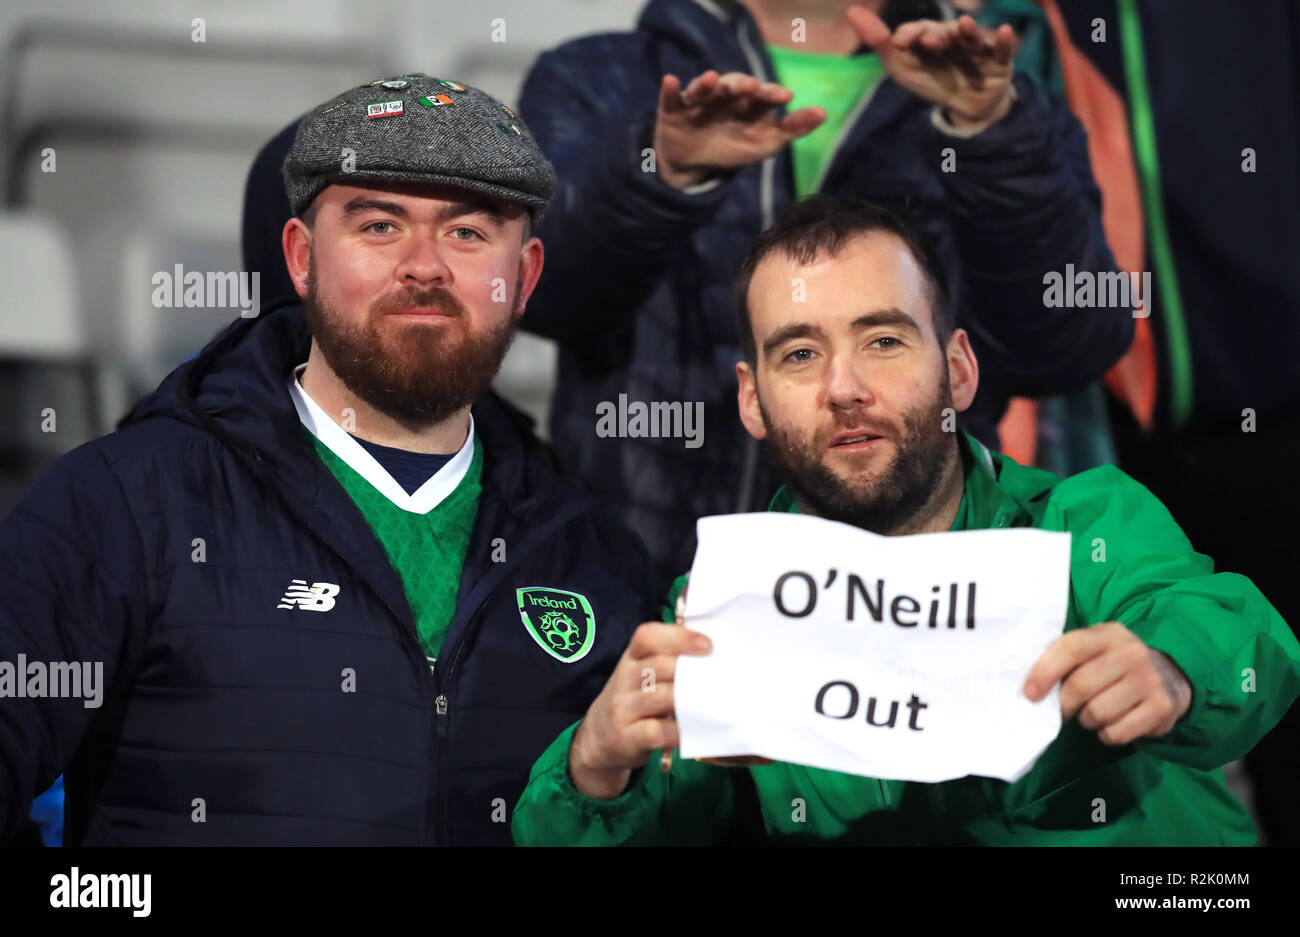 Republic Of Ireland Fans Hold Up A Banner Reading O Neill Out In Protest Against Manager Martin O Neill Before The Uefa Nations League Group B4 Match At Ceres Park Aarhus Stock Photo